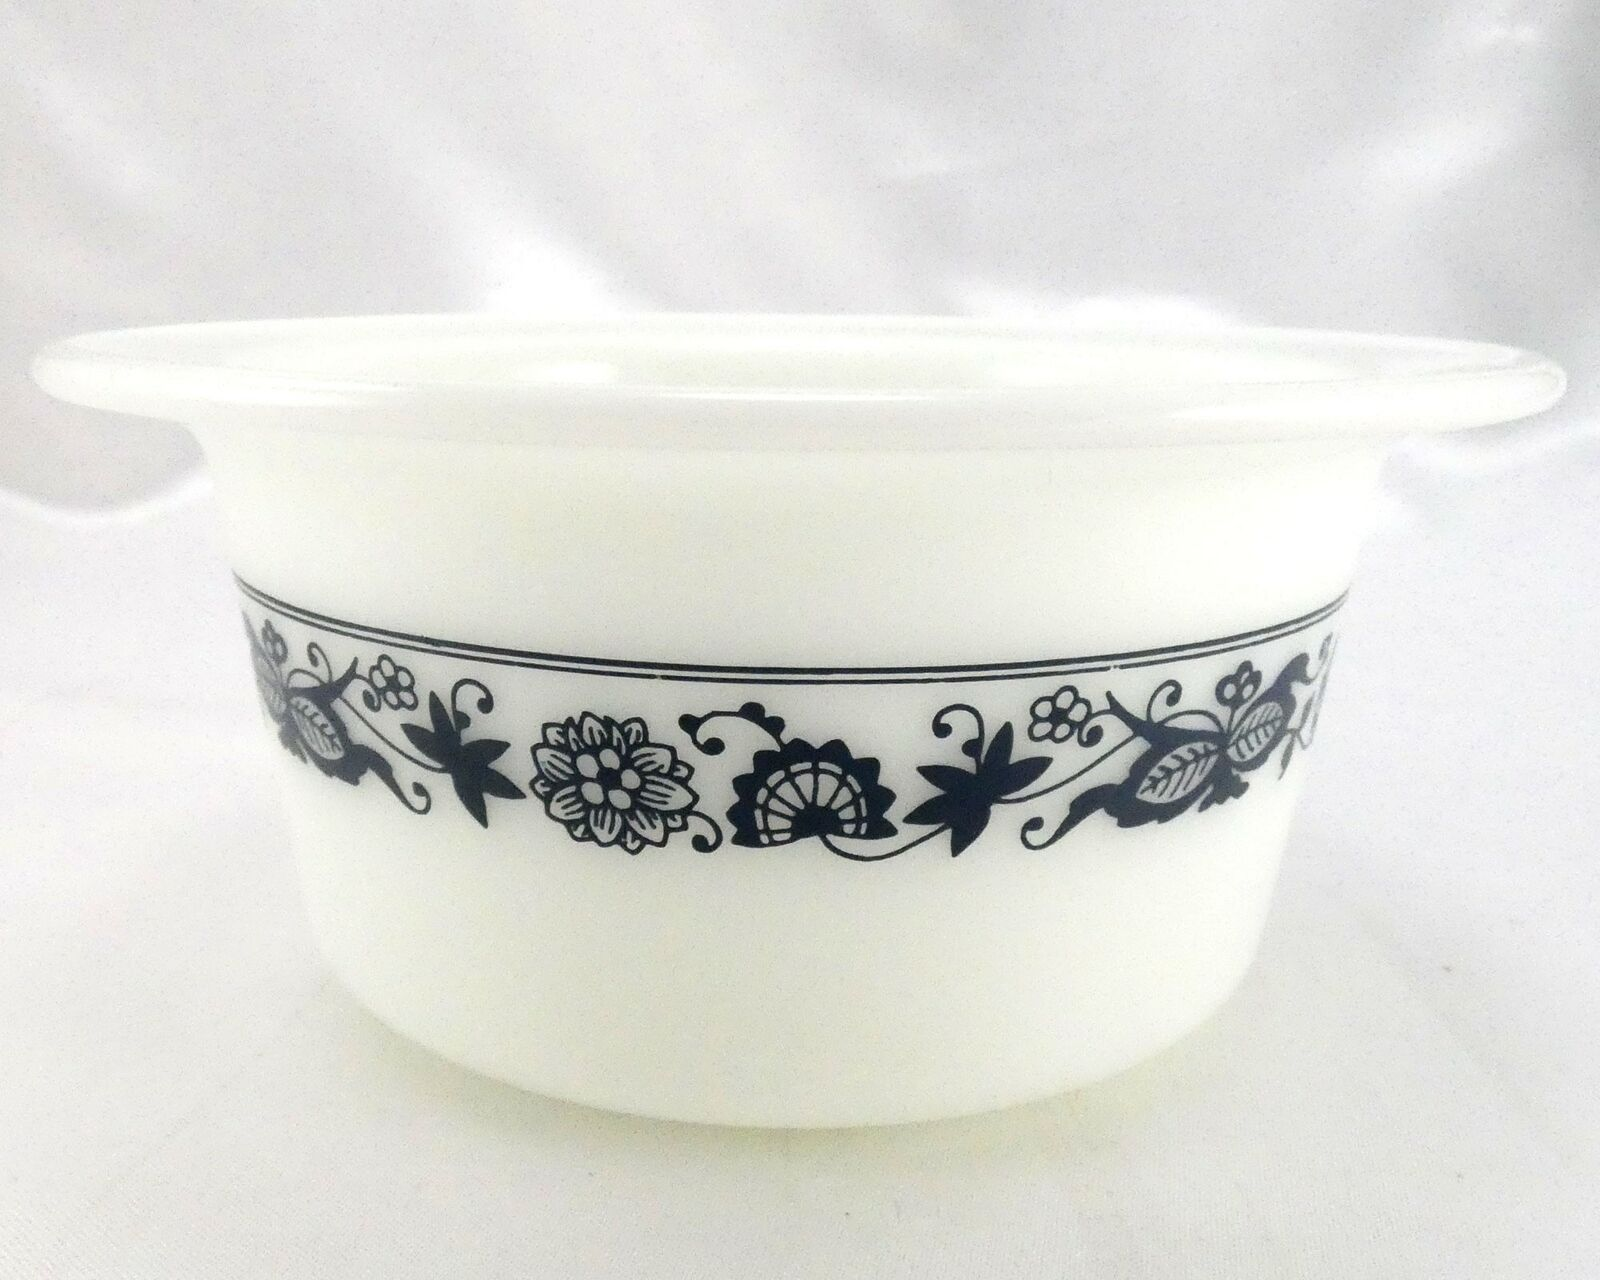 Pyrex 75 Old Town Dish Blue Wide Extended Rim Crock Style Bowl ~ Made in the USA image 3